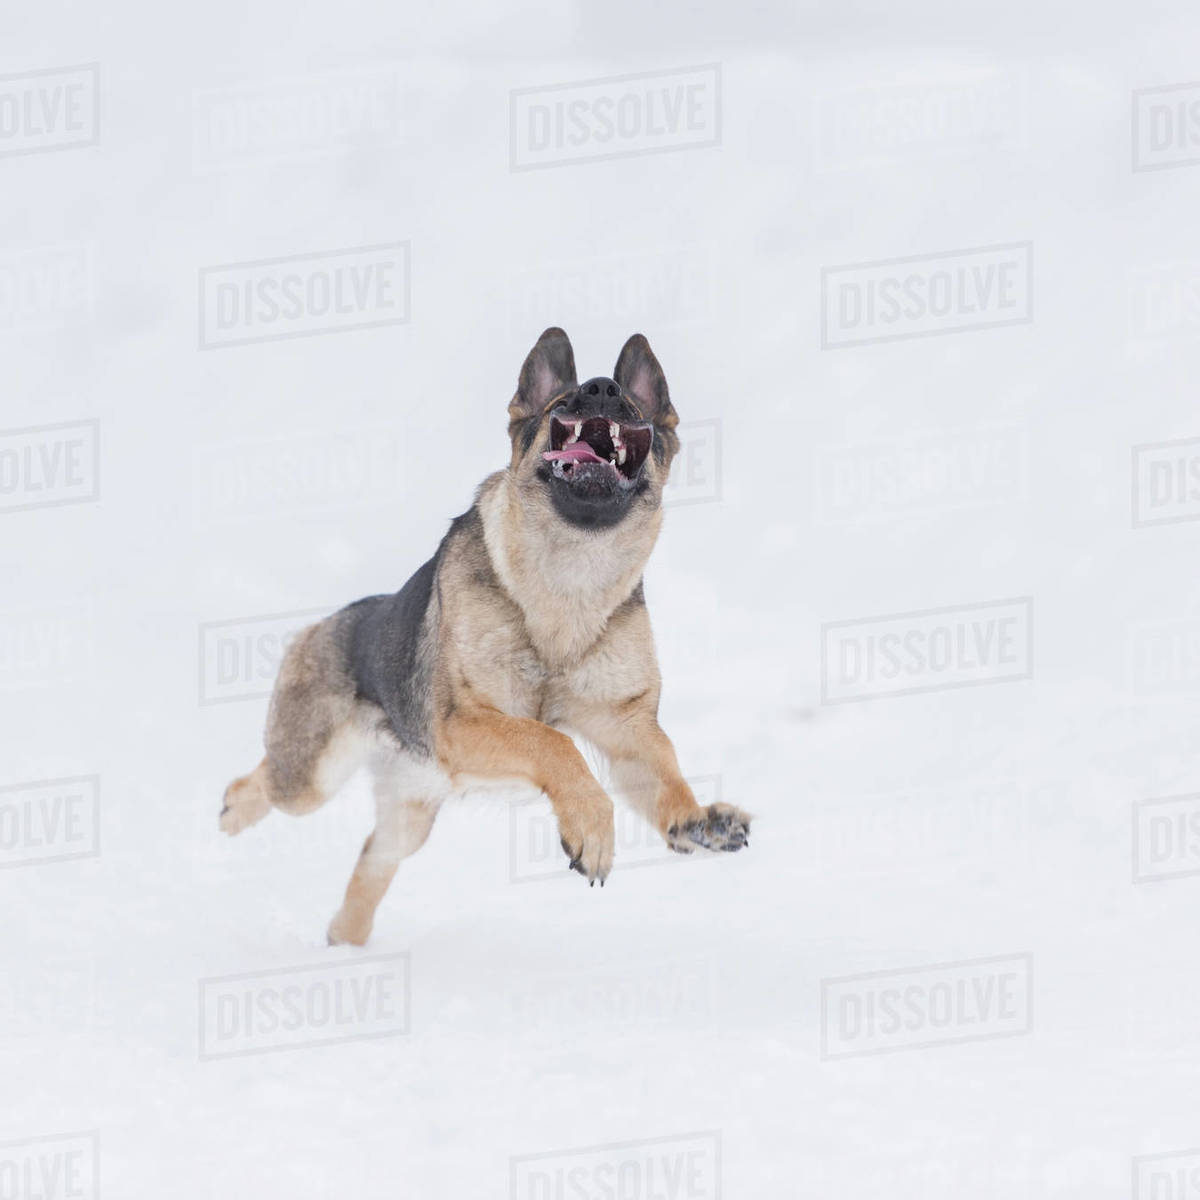 Photograph Of A Single German Shepherd Dog Running In Snow Stock